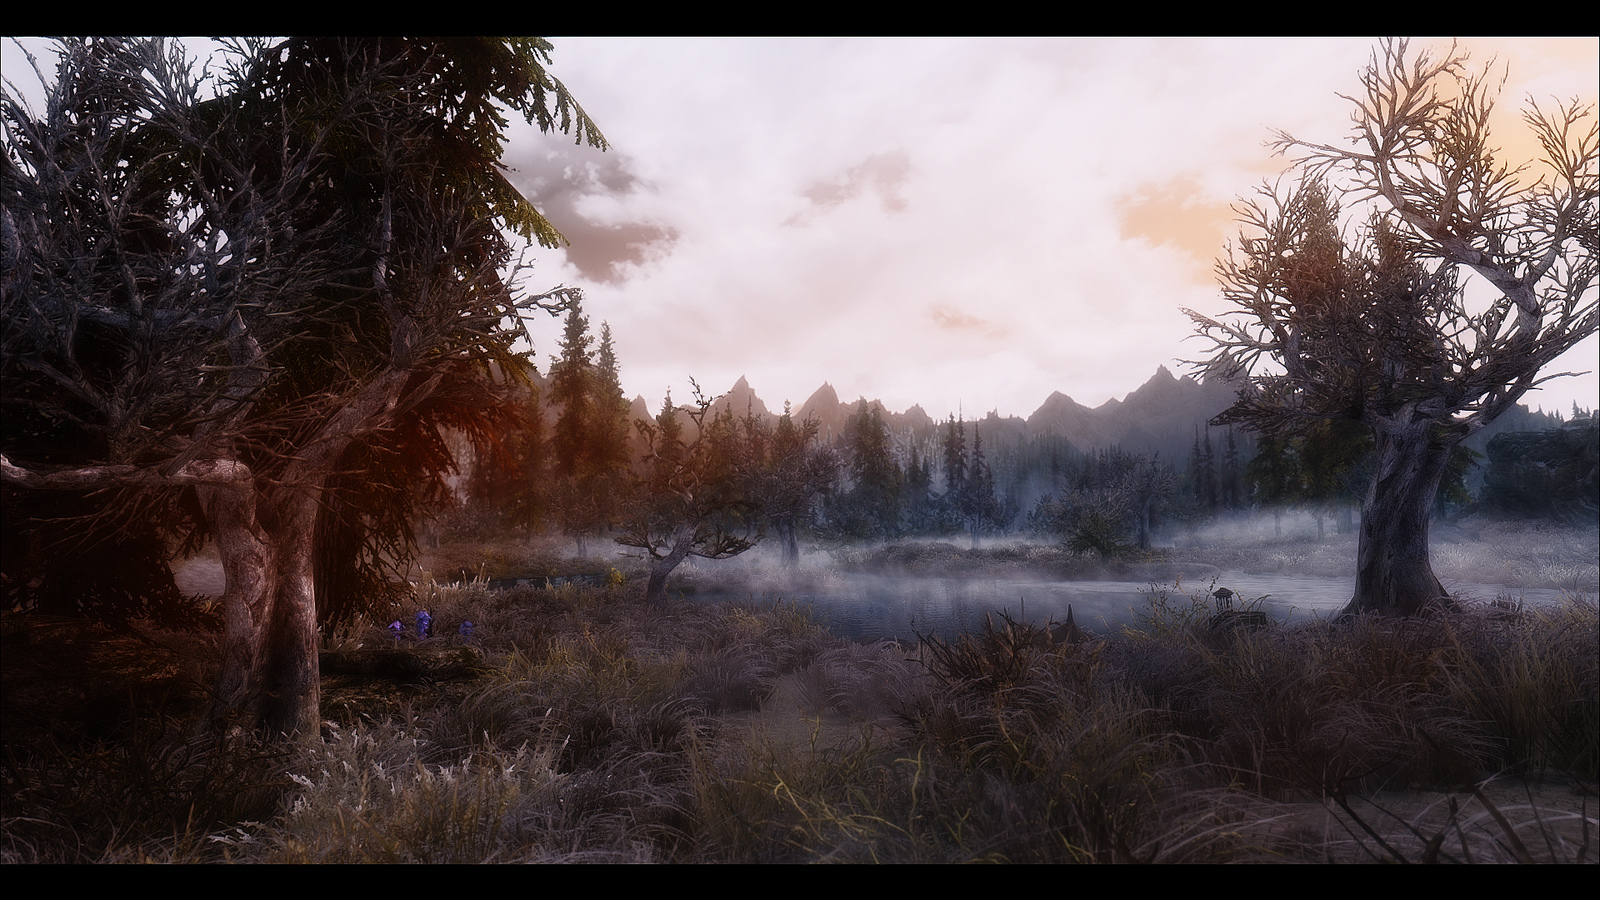 New Skyrim ENBseries Mod Screens Show Photo-Realistic